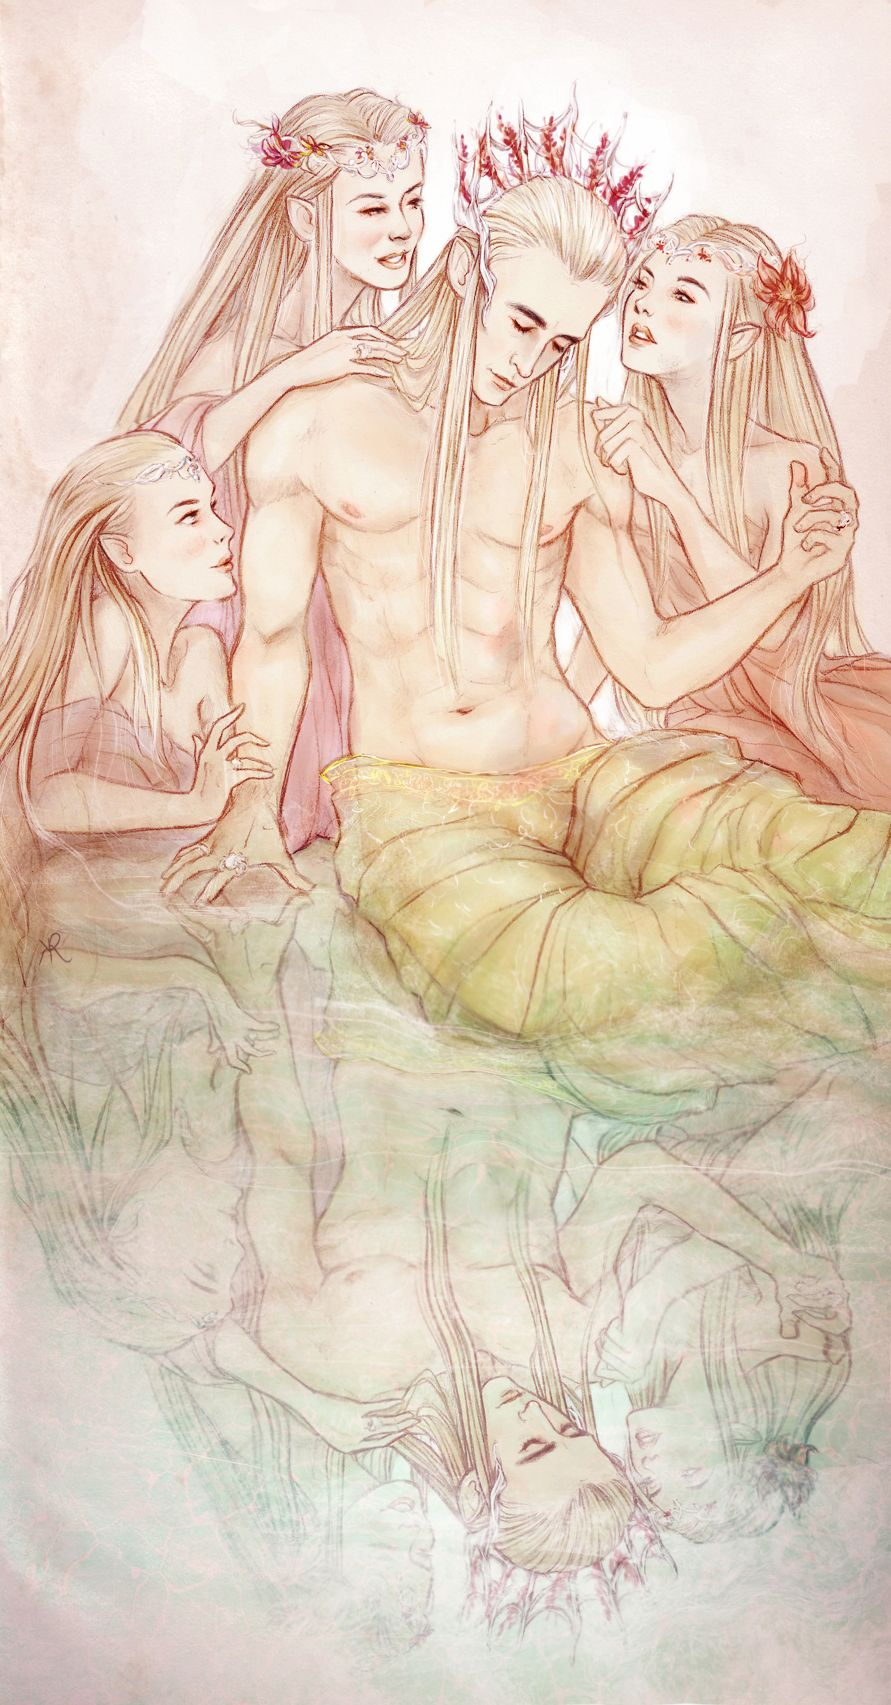 Thranduil had wanted to be with other women. He had tried but none of them could get her out of his head.